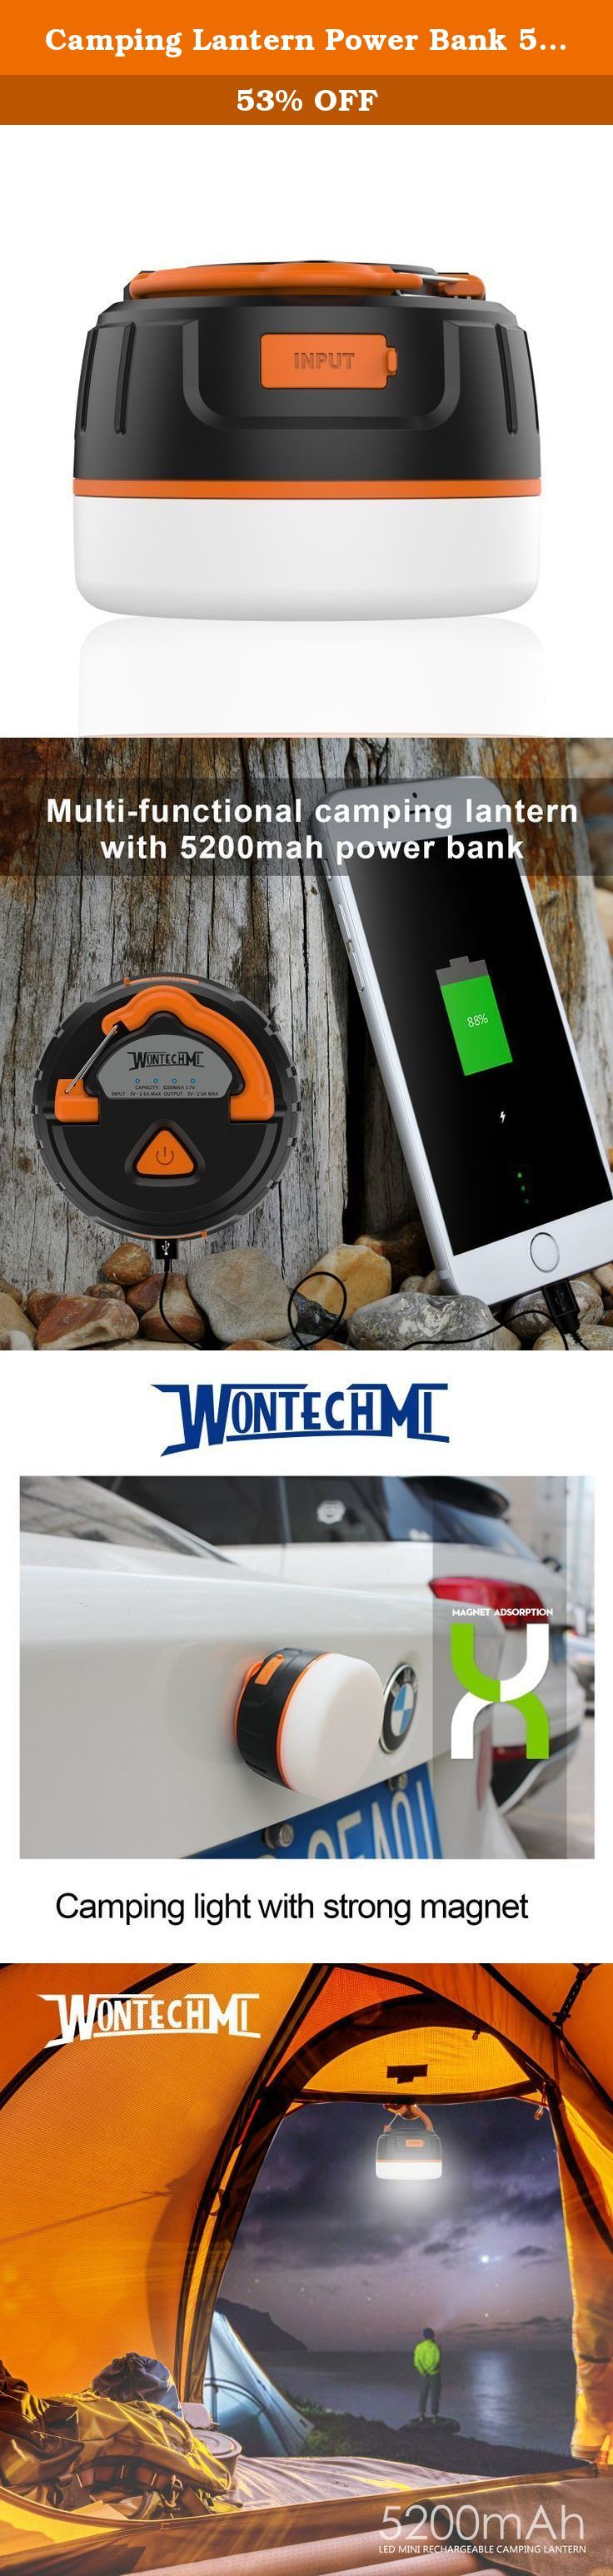 Camping Lantern Power Bank 5200 mah, WONTECHMI Waterproof Rechargeable 200 Lumen LED Light and Strong Magnet, Perfect for Tents, Camping, Hiking and Christmas gift. WONTECHMI Camping Lantern- - the best choice for outdoor activities Rechargeable camping lantern is not only a fashion lantern but a power bank with lithium battery inside. It can be hanged upon the tent hook or be laid out horizontally on the desk as a reading light. What's more, the strong magnet allows you to put the…